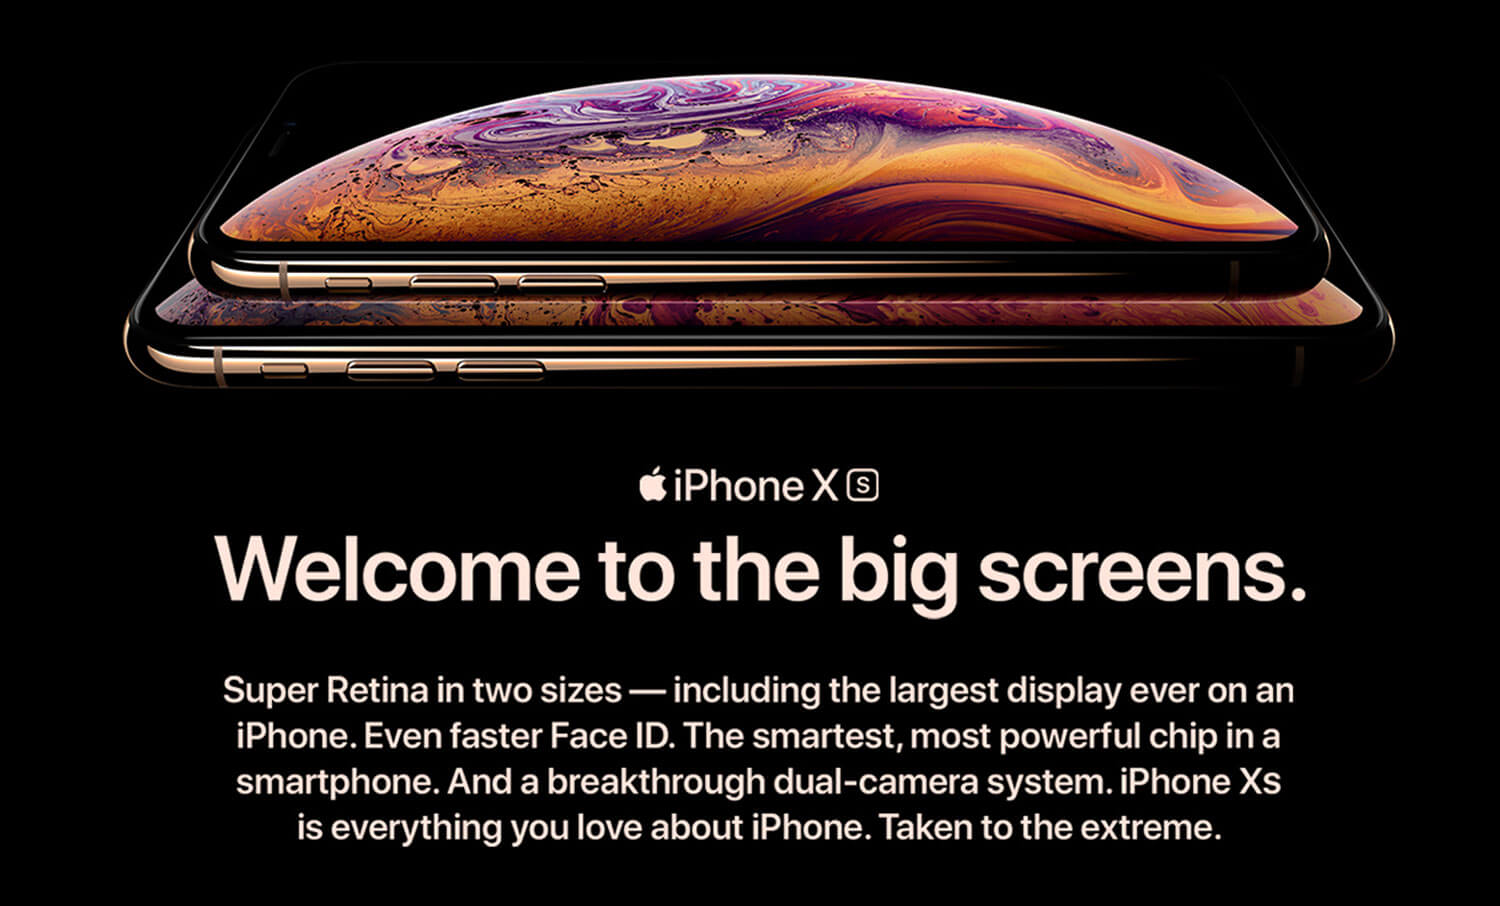 iPhone X and iPhone Xs Max